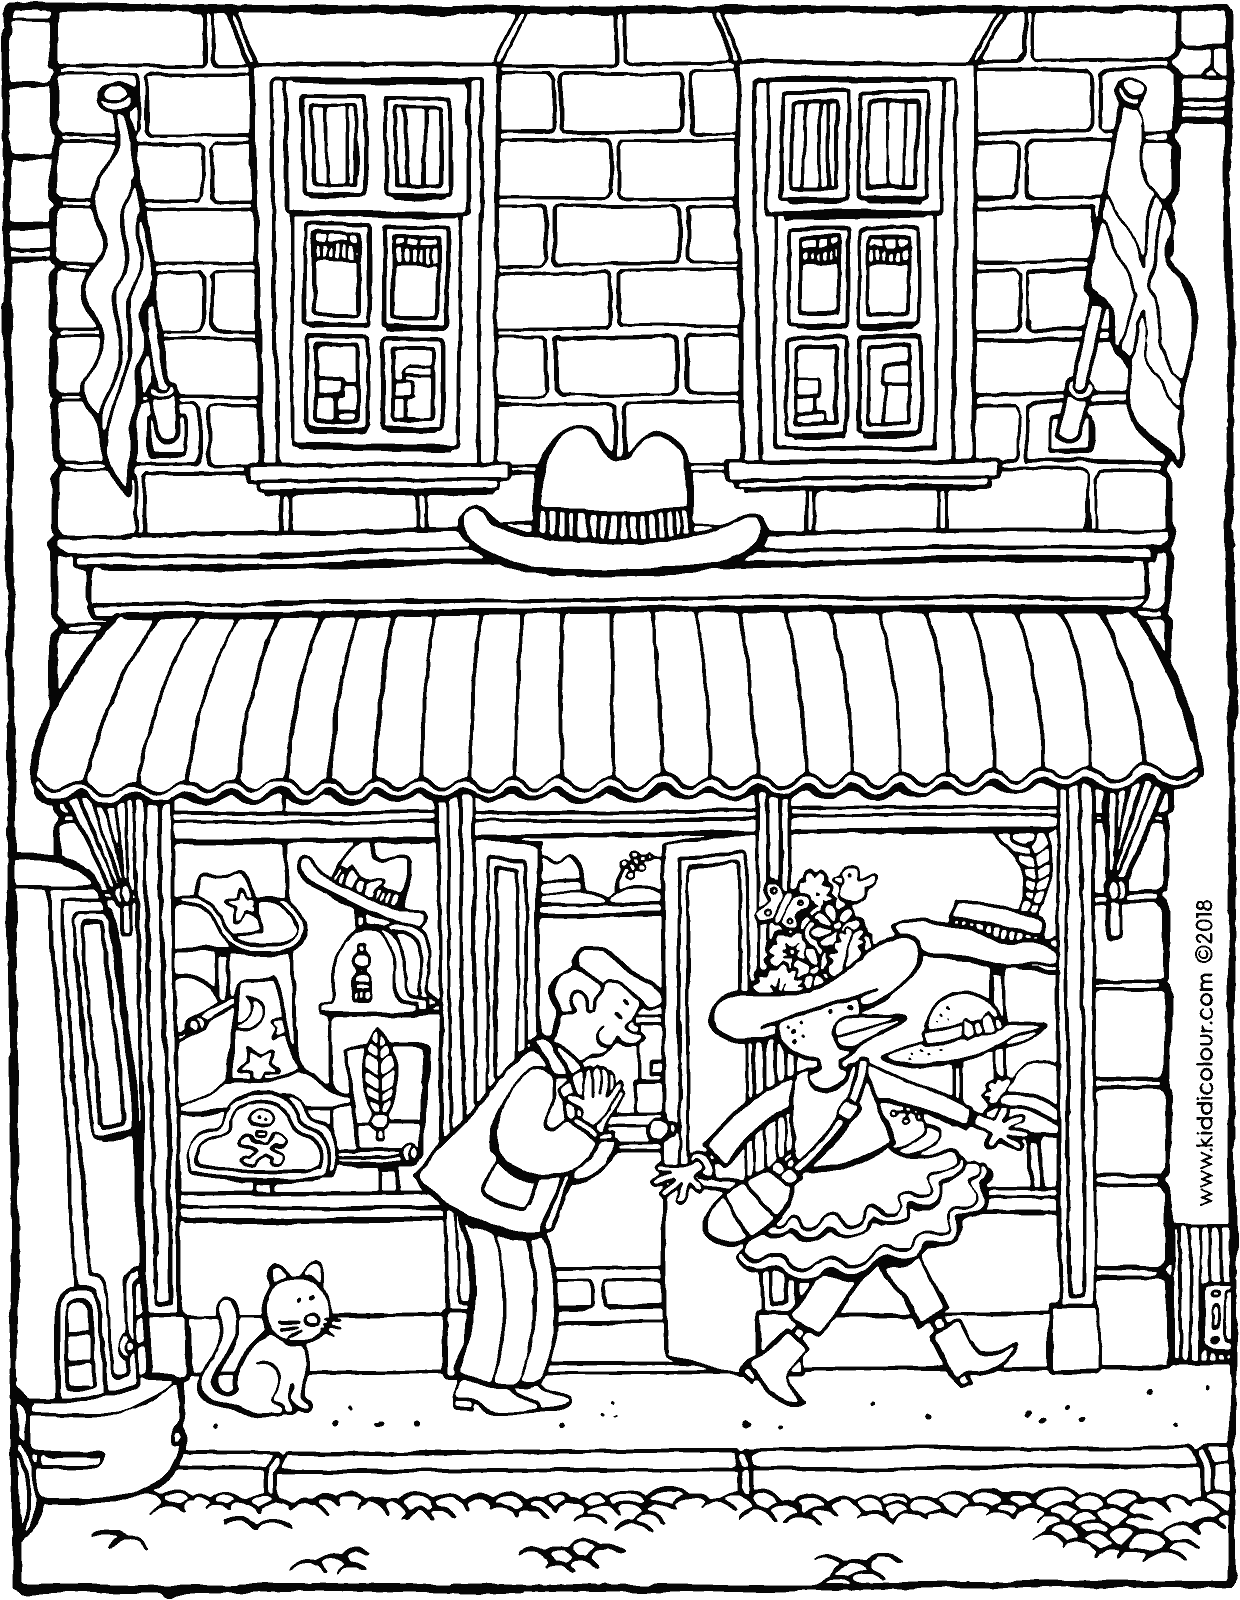 shop coloring page toy shops colouring pages chitty chitty bang bang coloring page shop